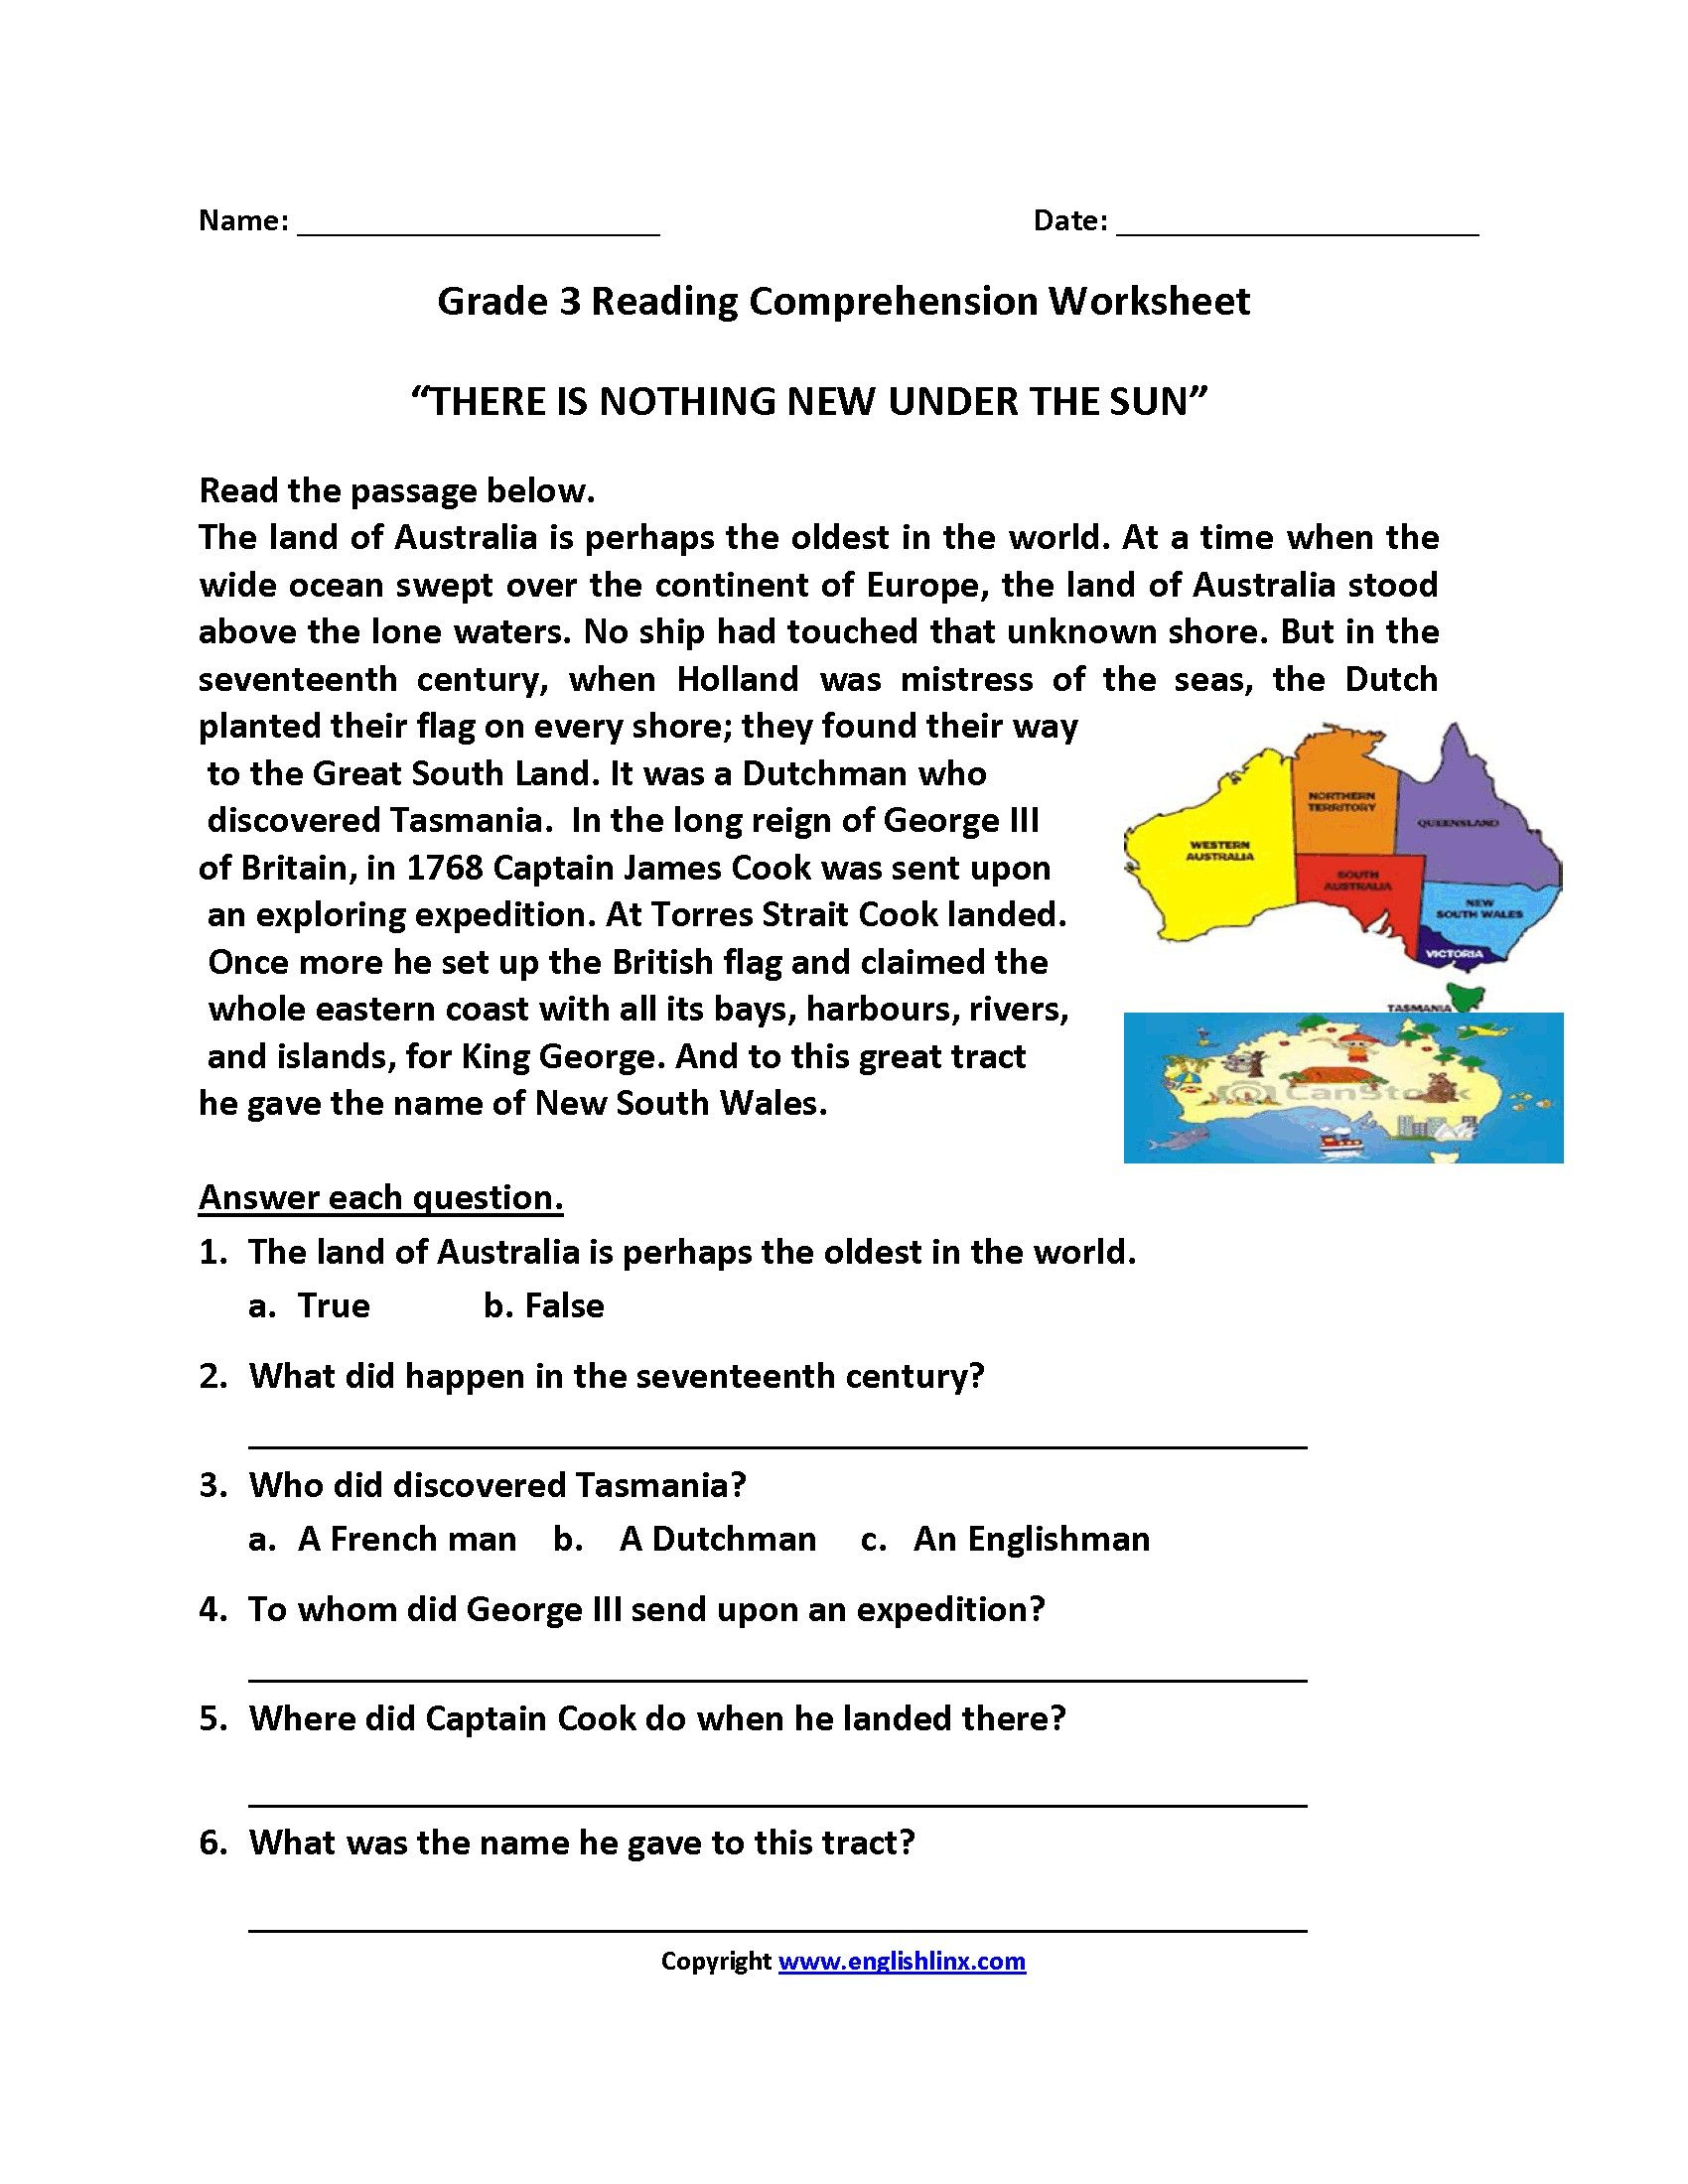 7 Comprehension Worksheets For Grade 1 In With